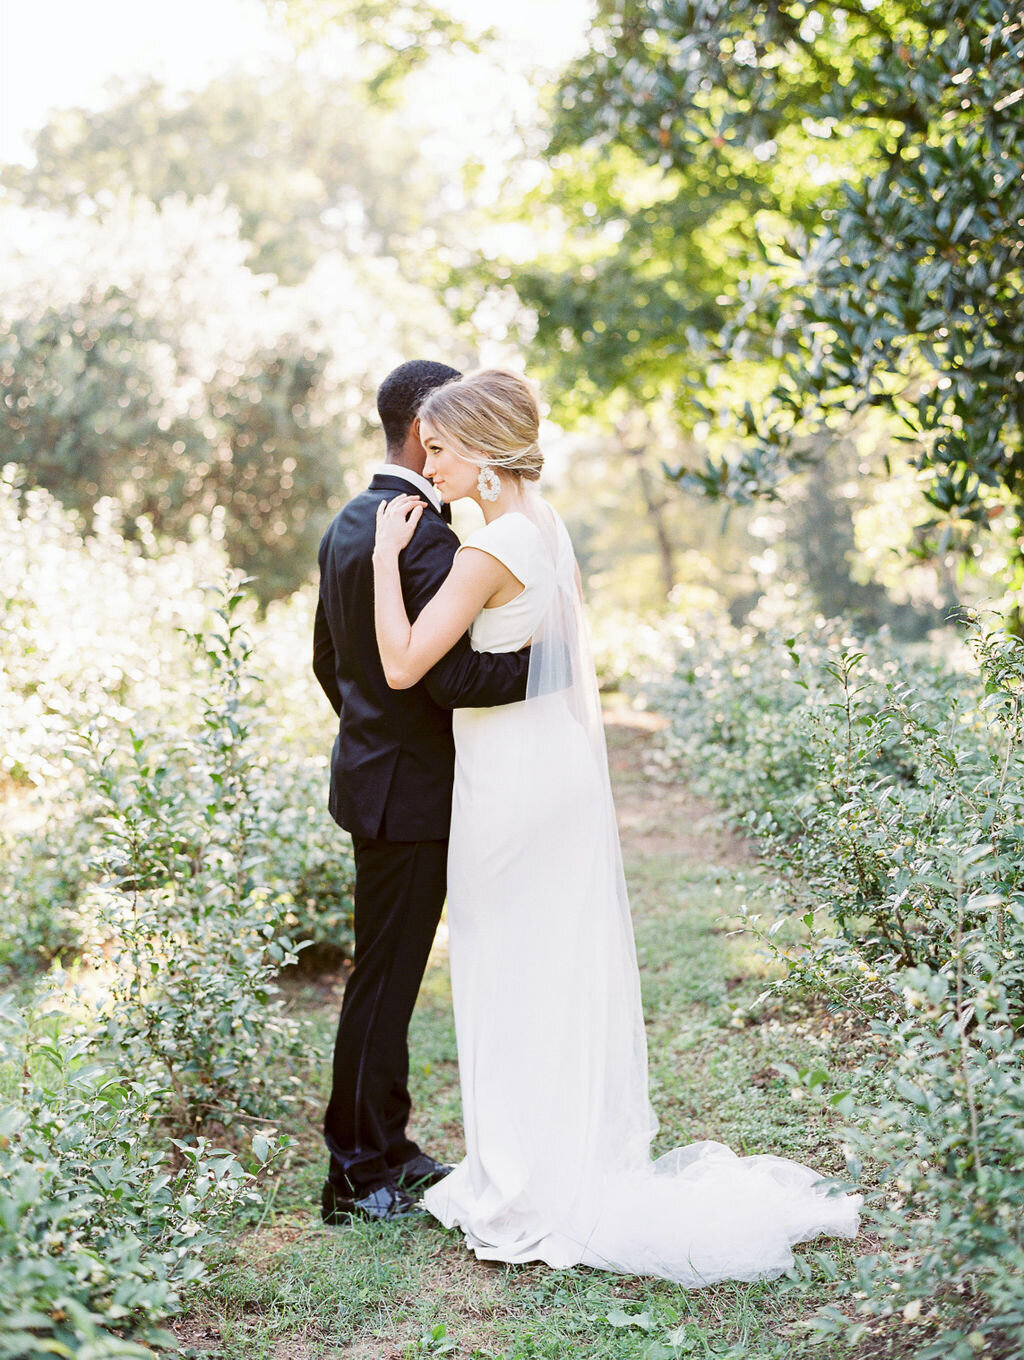 www.hannahforsberg.com-atlanta-wedding-photographer-dunaway-gardens-88 copy